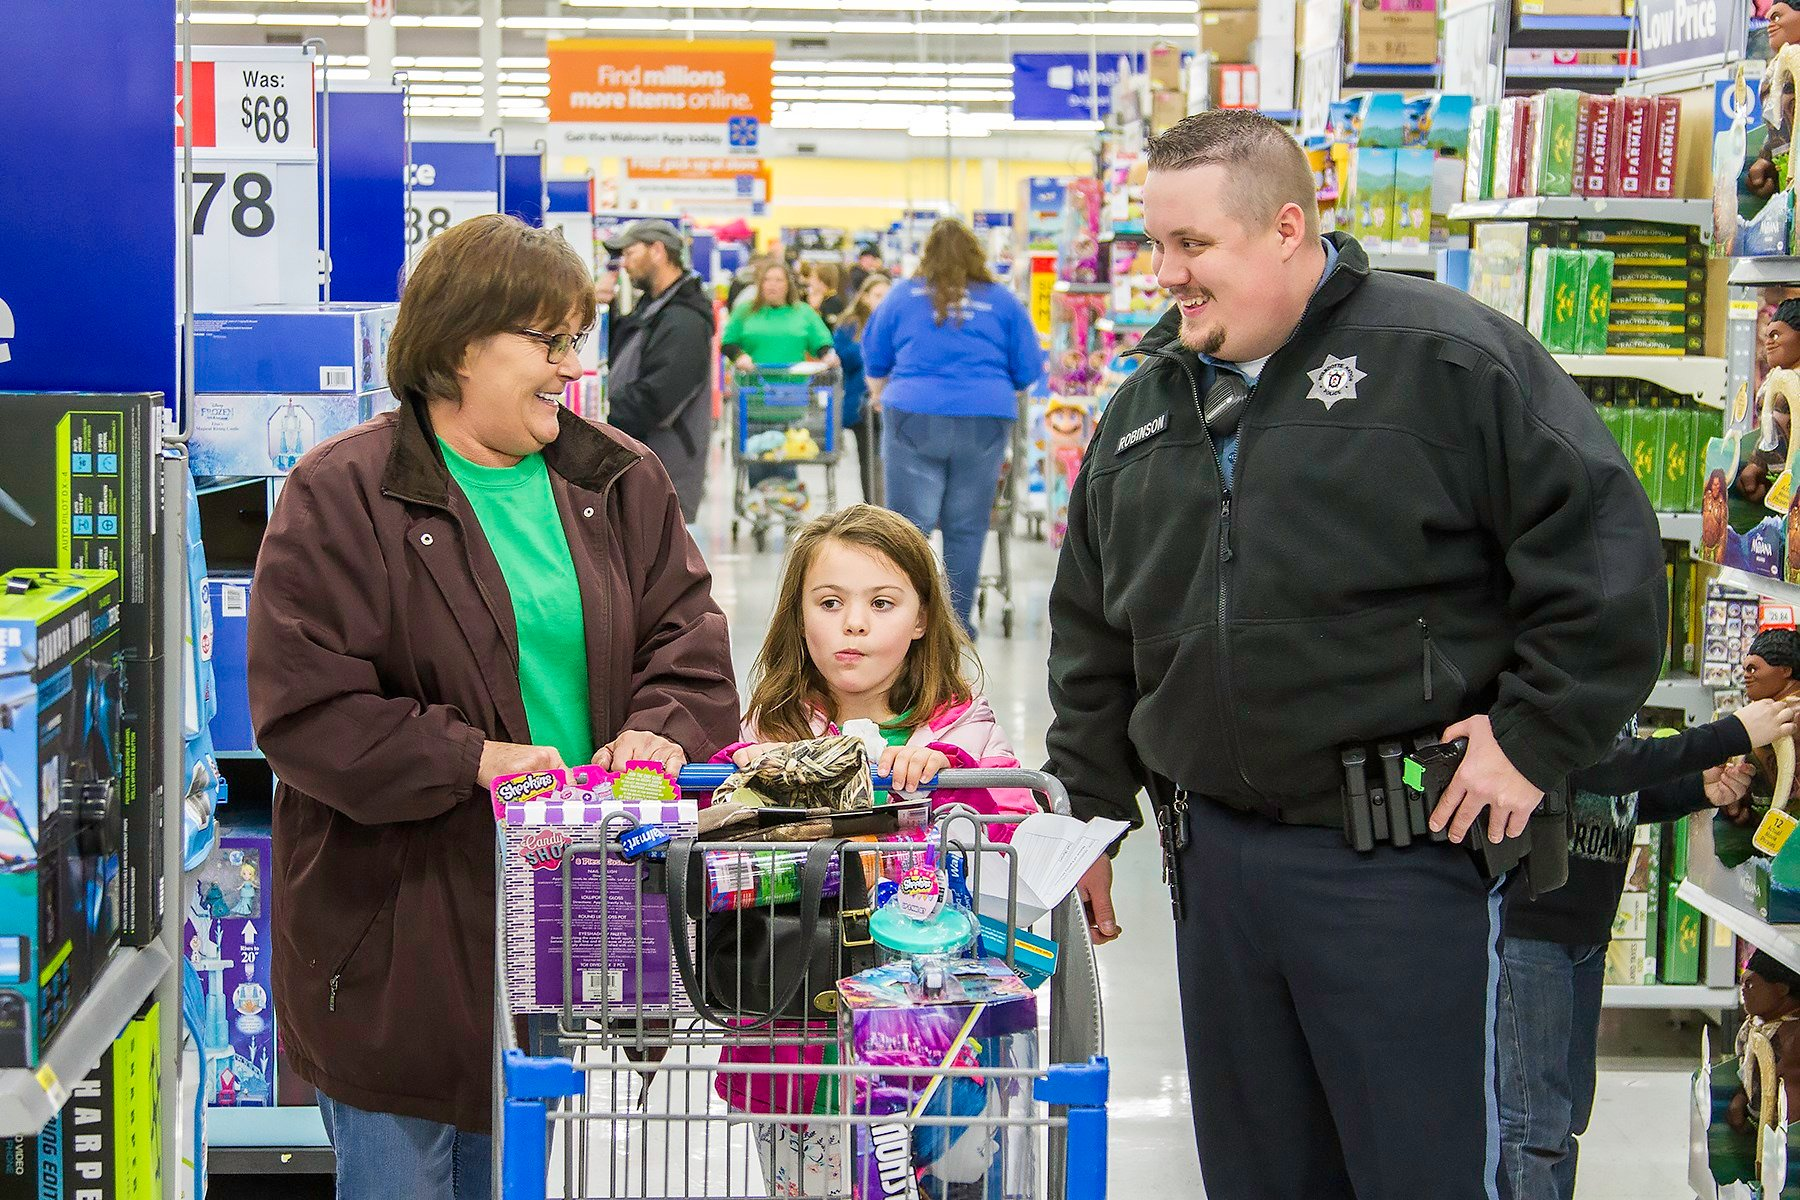 Susan Friend, Madison Homler, and Officer Jared Robinson enjoy a few laughs while shopping for gifts.